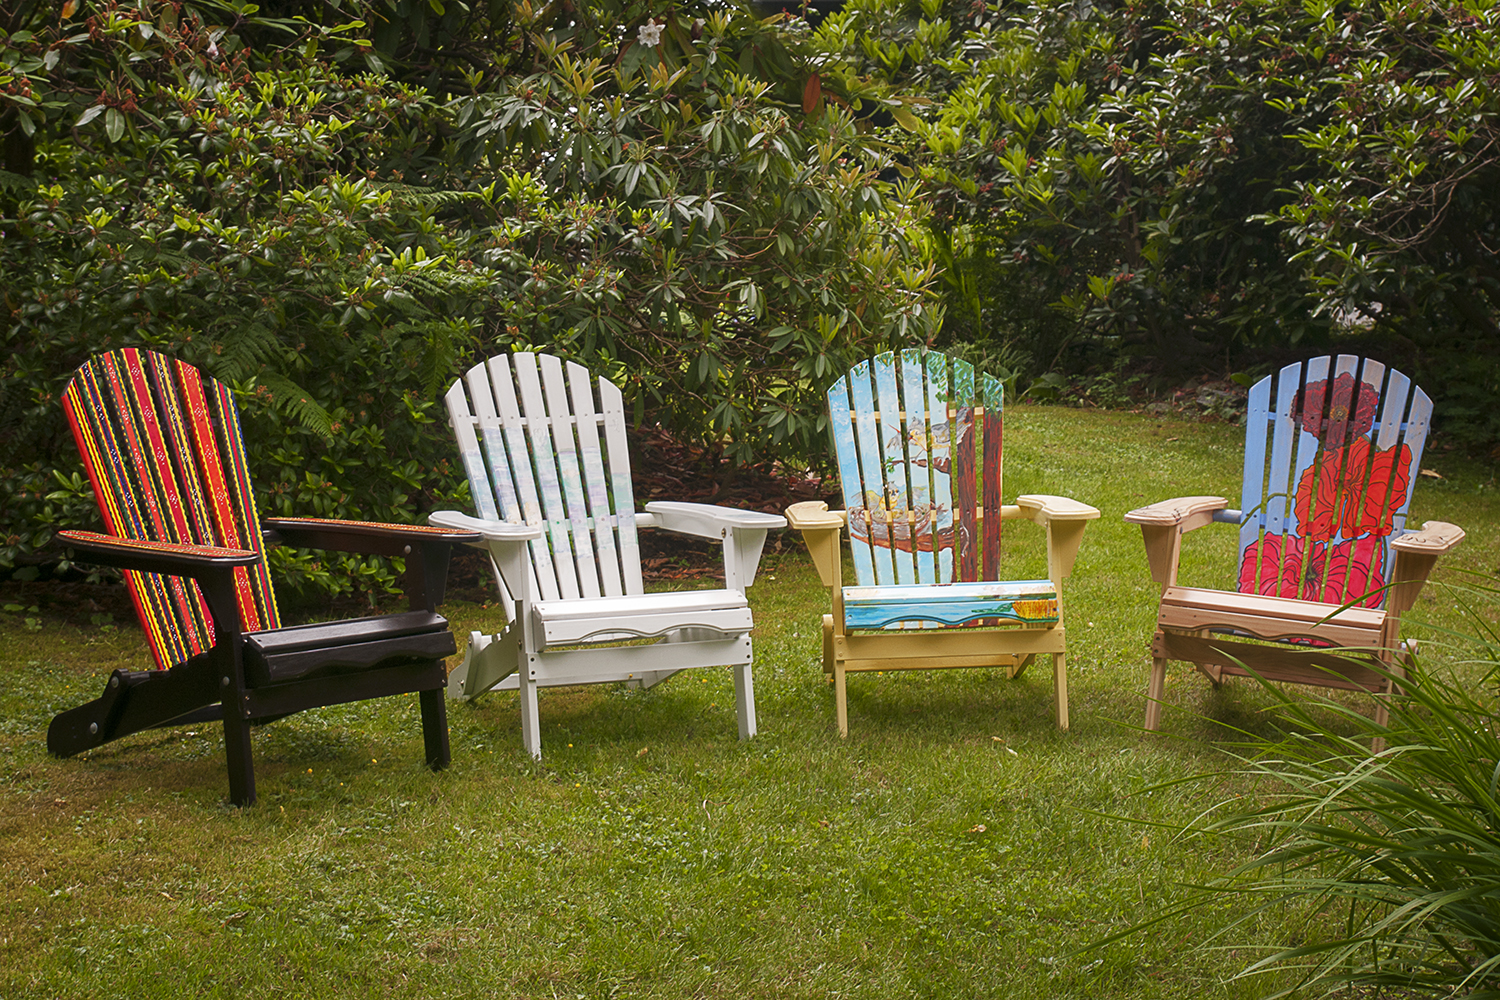 painted adirondack chairs where to buy back support for chair artist arts at darts what expect an outdoor art show